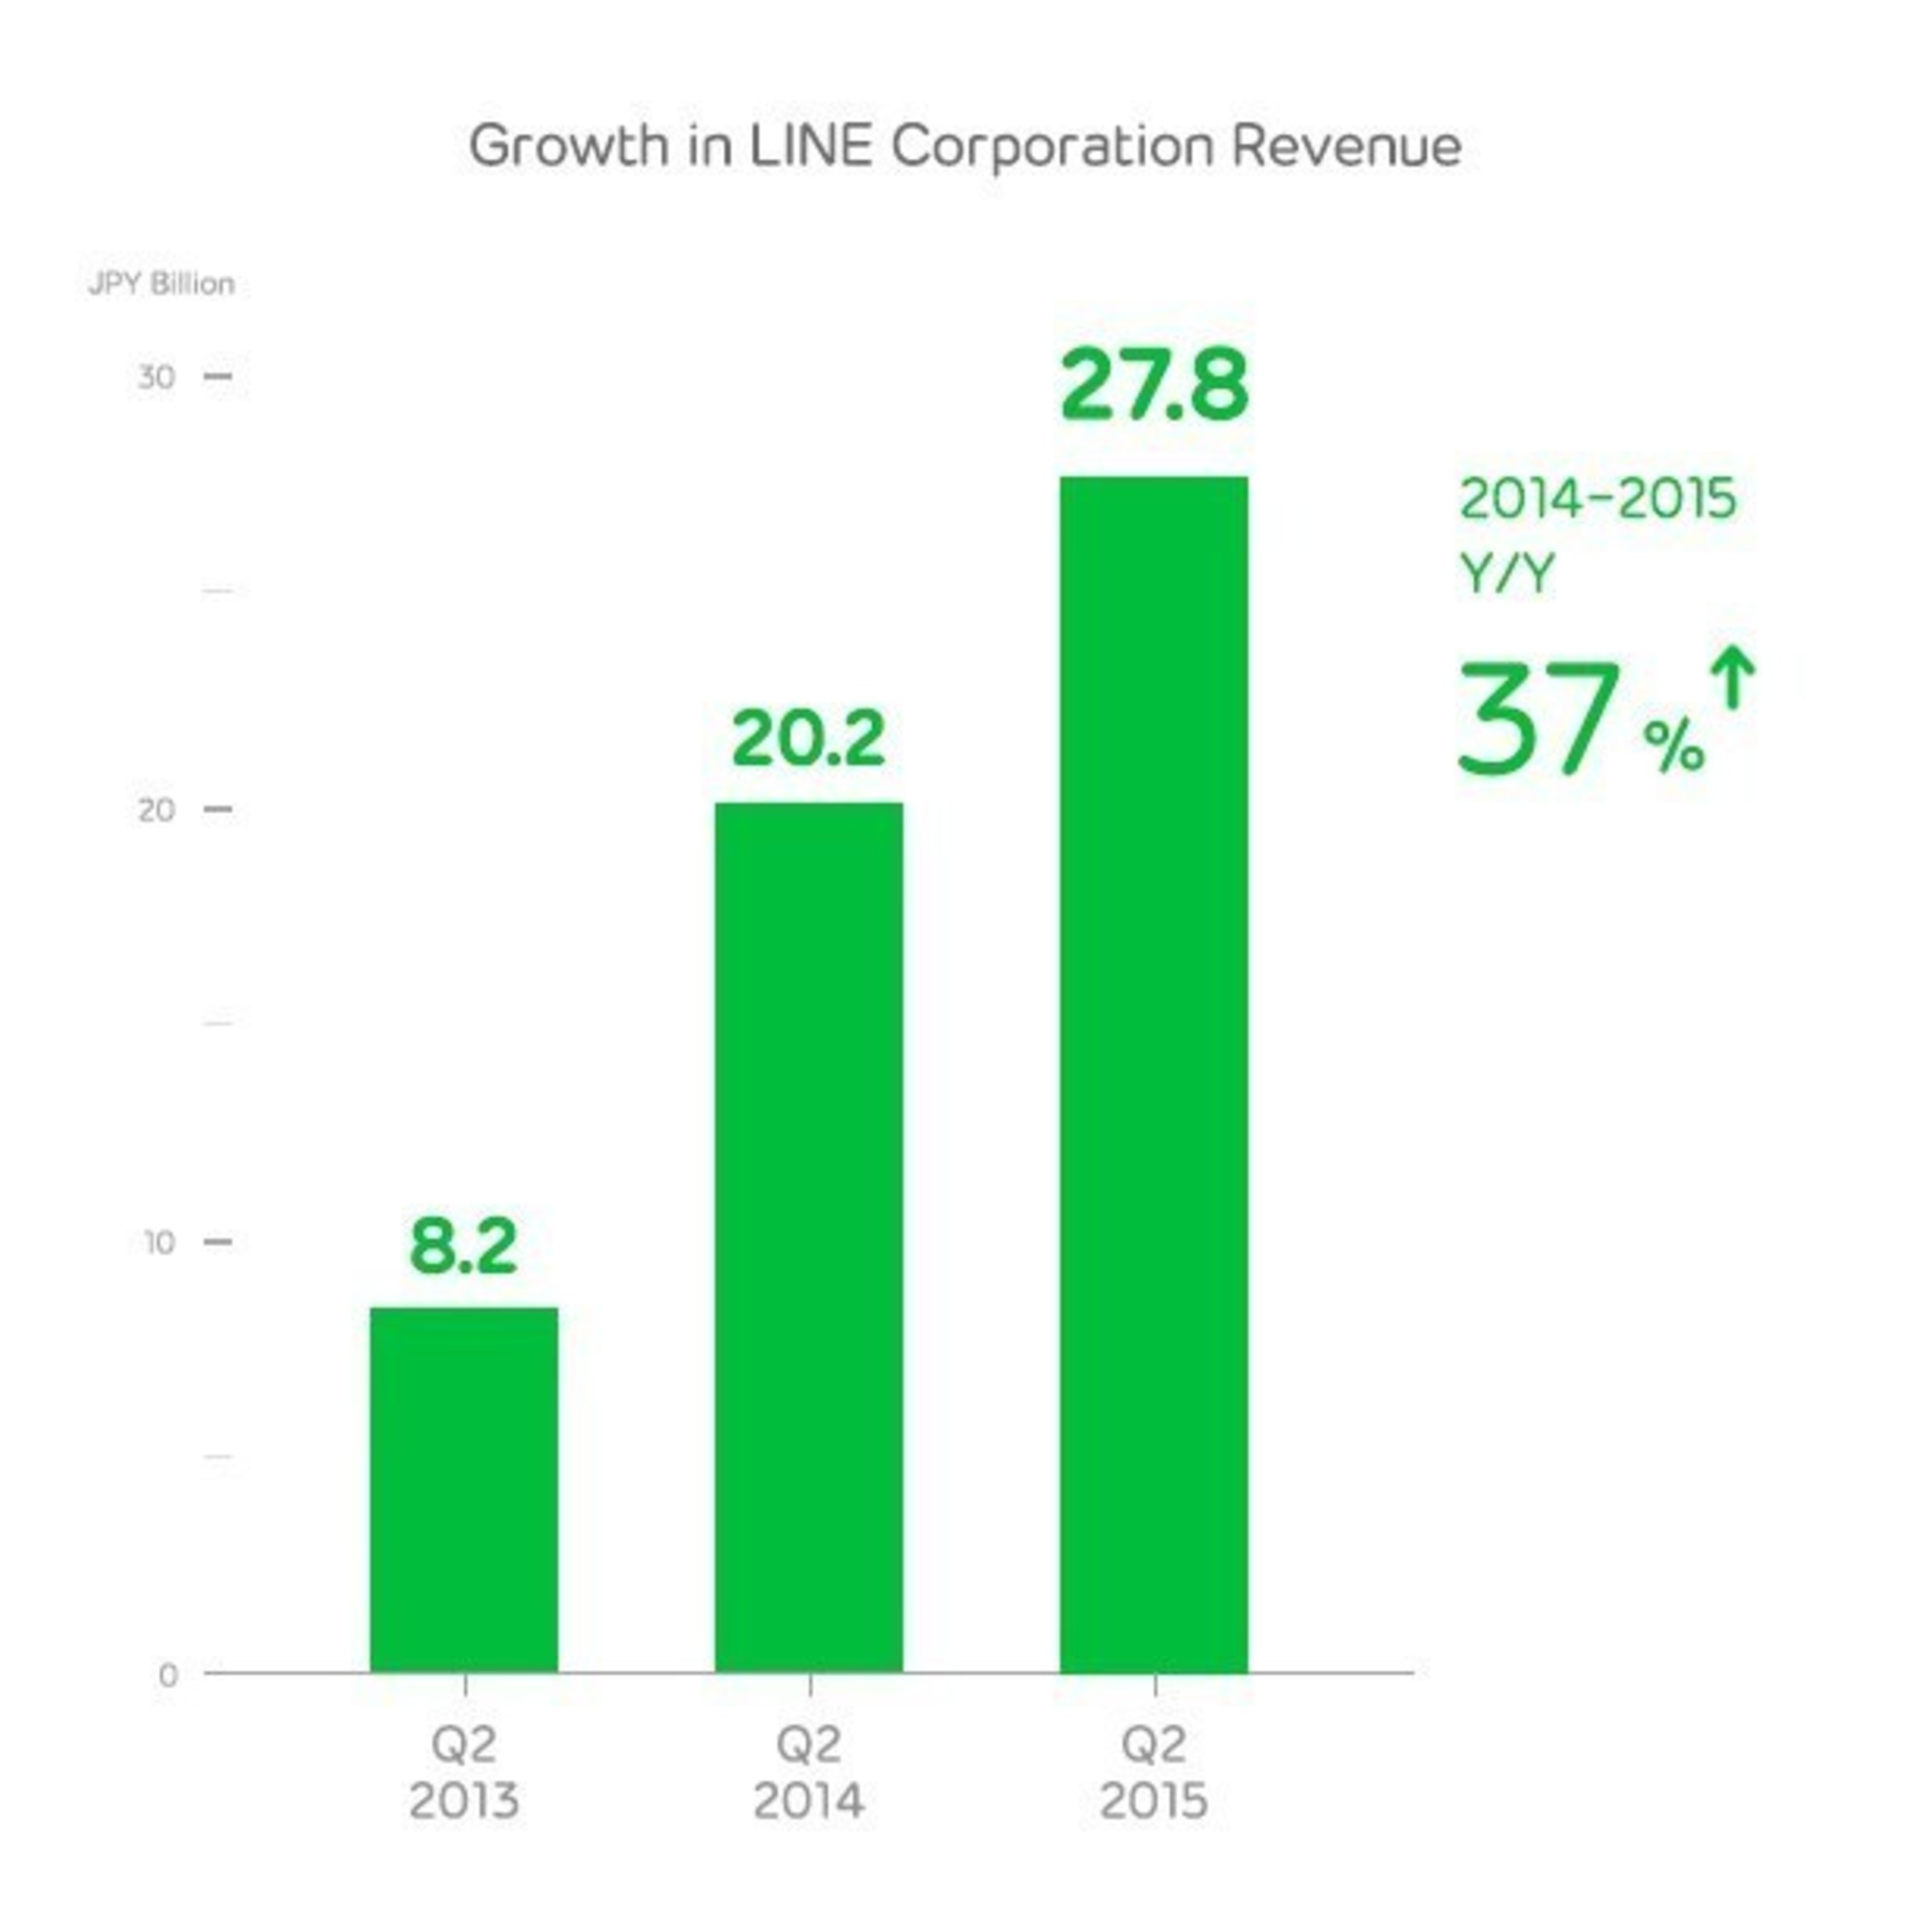 LINE Corporation, owner and operator of the free call and messaging app LINE, today announced their Q2 (April-June) earnings for 2015.